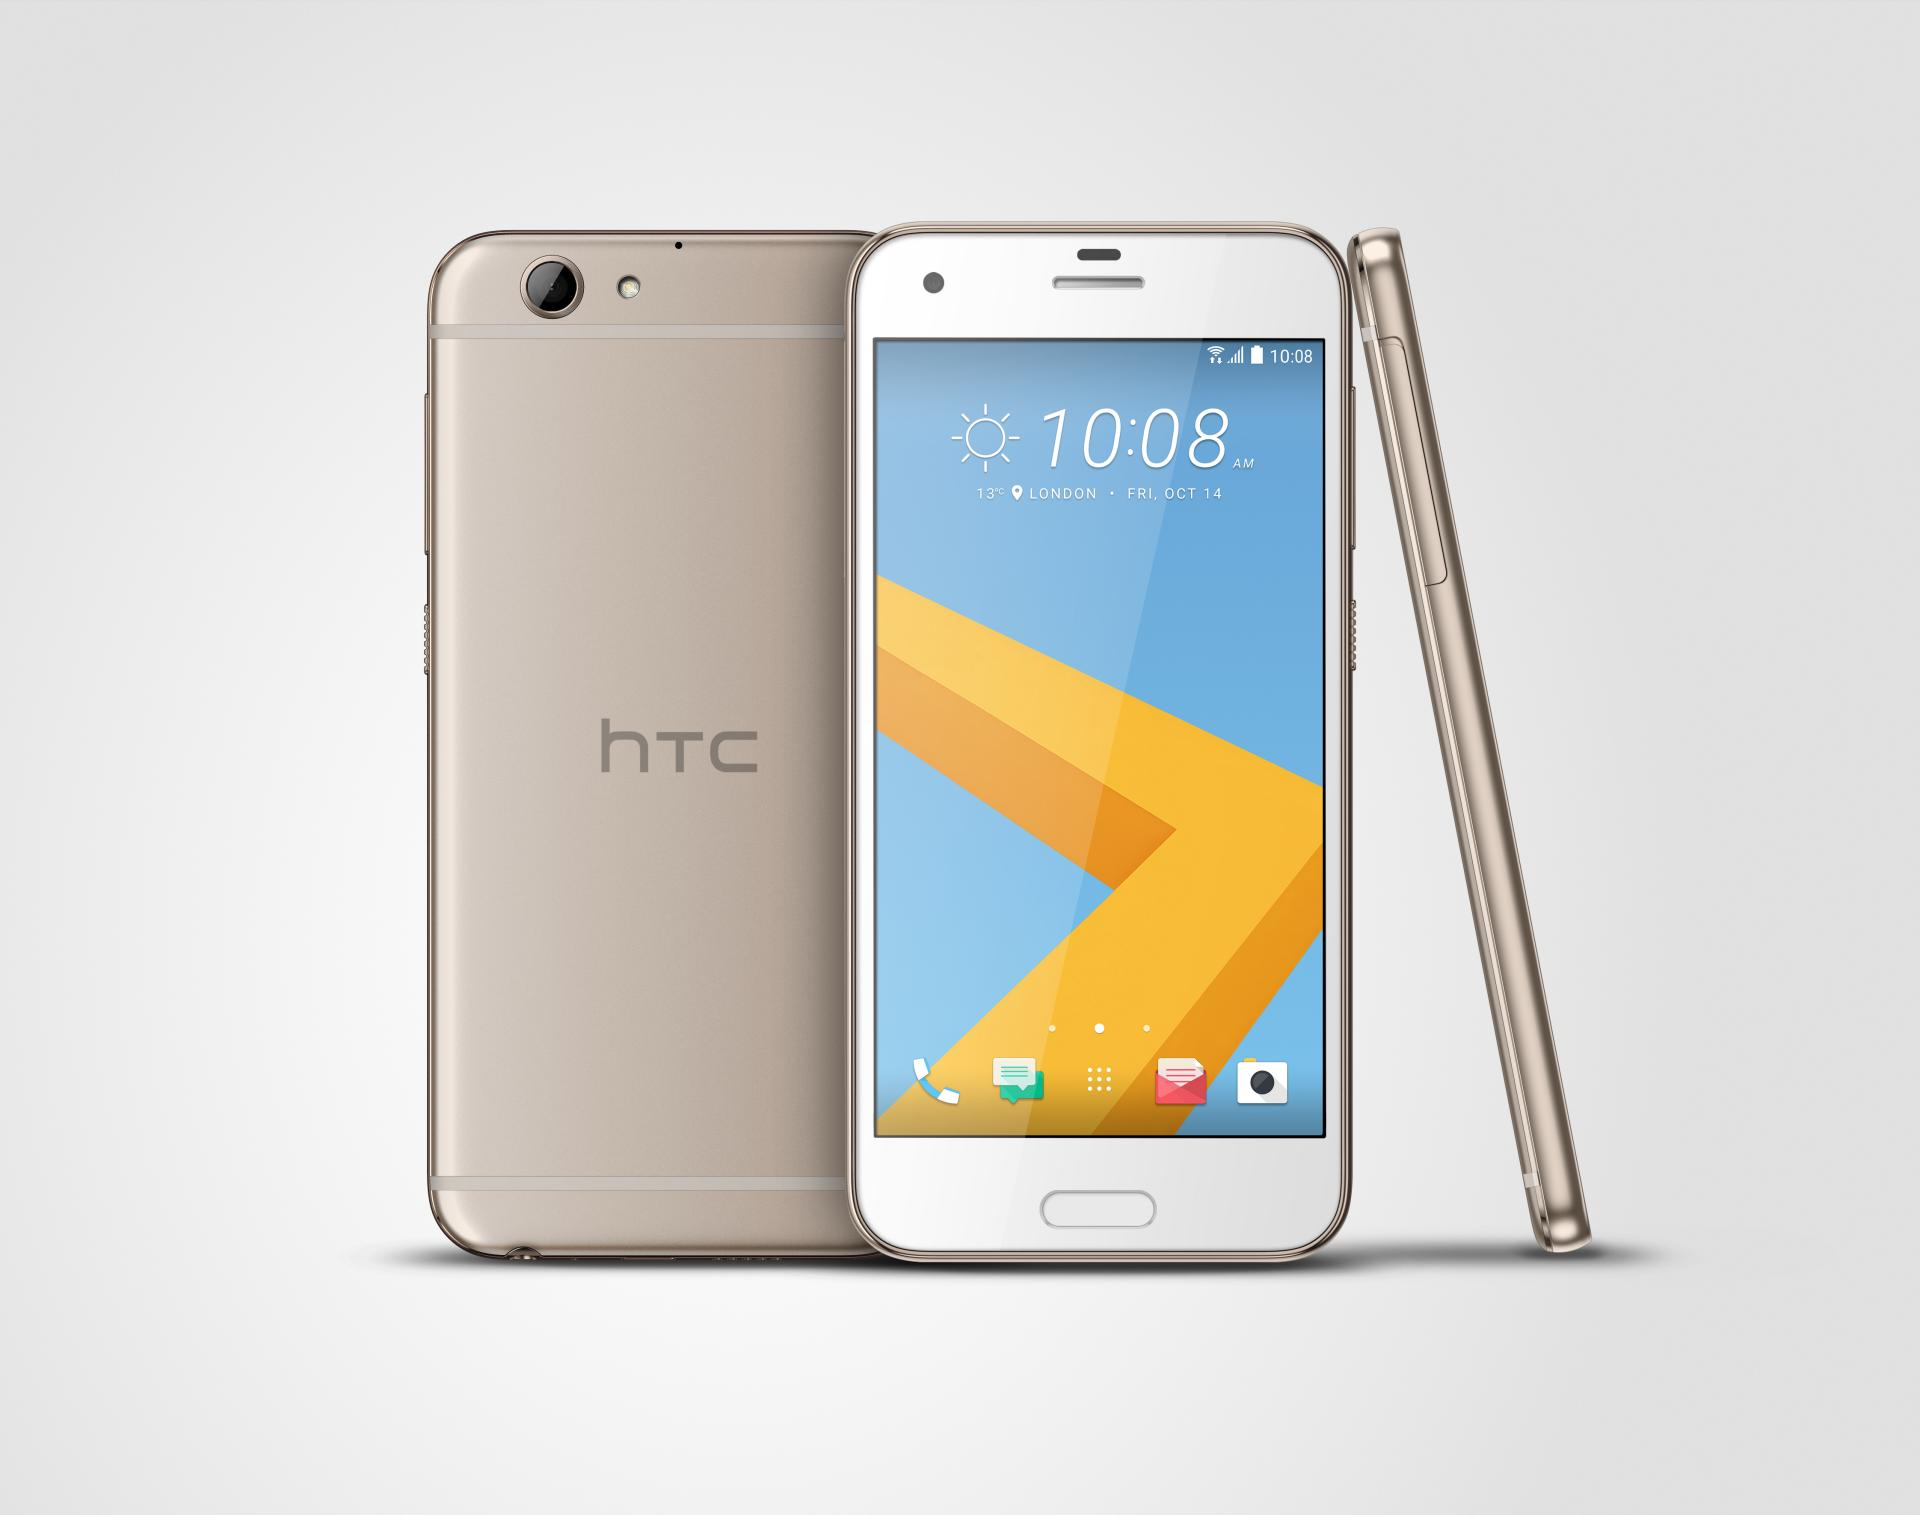 htc one a9s is official with more iphone similarities and. Black Bedroom Furniture Sets. Home Design Ideas